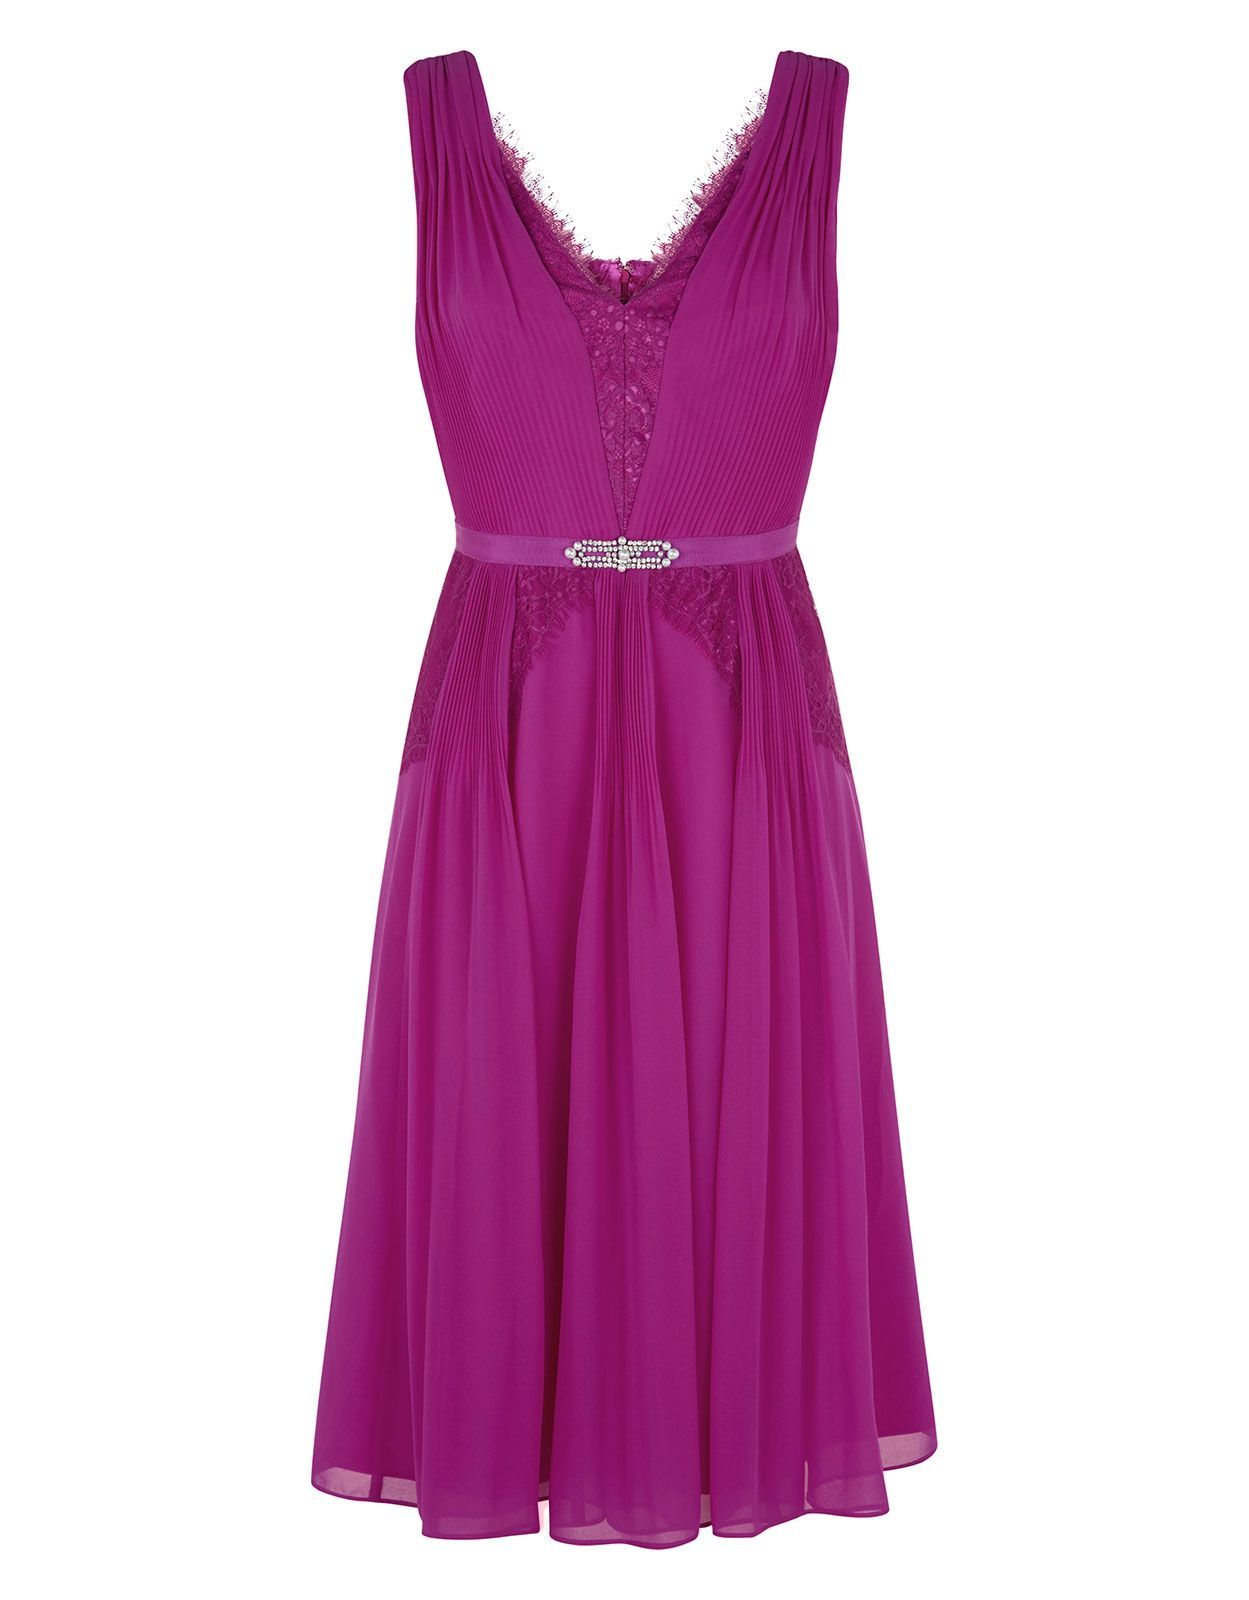 Madison Dress | Pink | Monsoon | Bridesmaid dress ideas | Pinterest ...